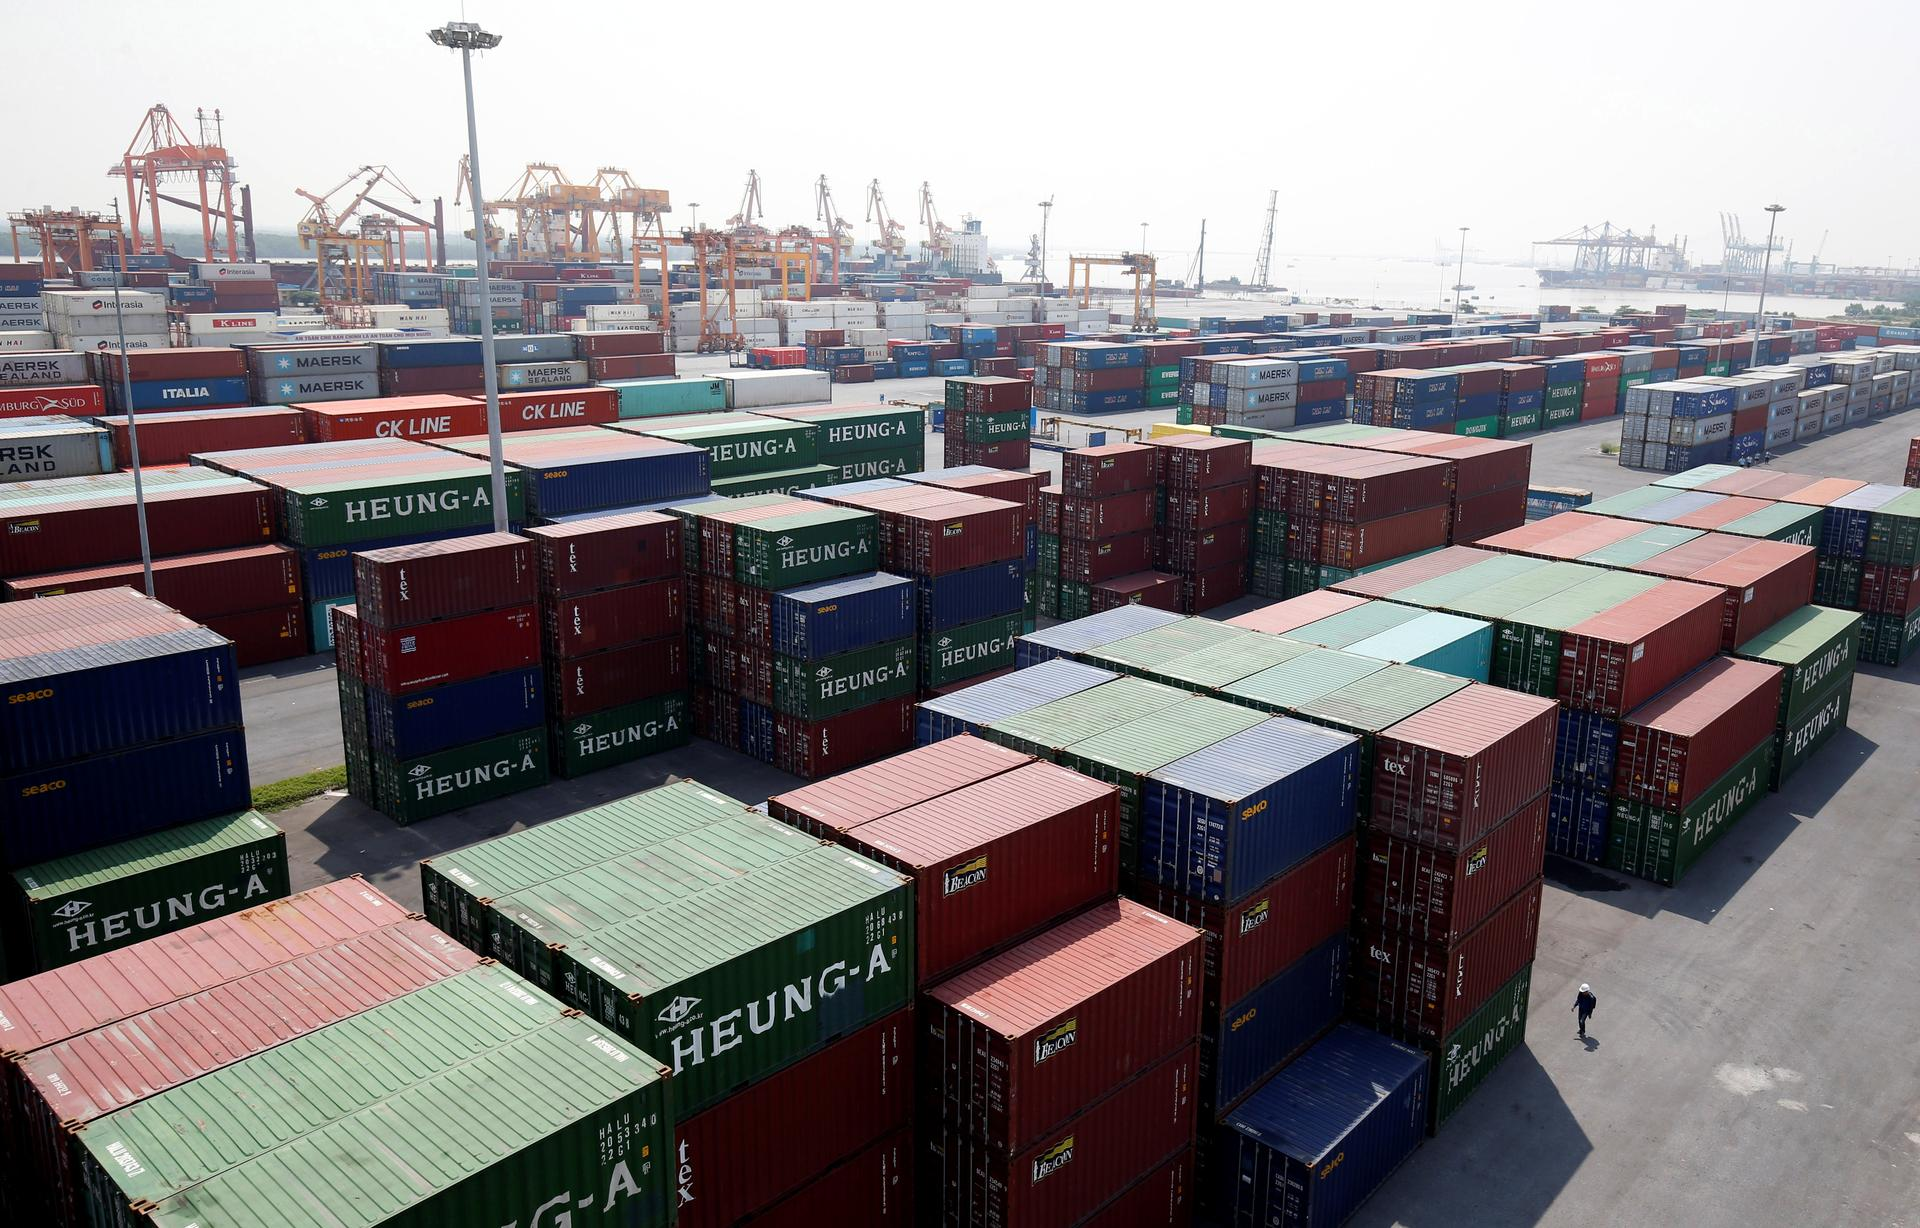 Shipping containers are seen at a port in Hai Phong city, Vietnam July 12, 2018. Photo: Reuters